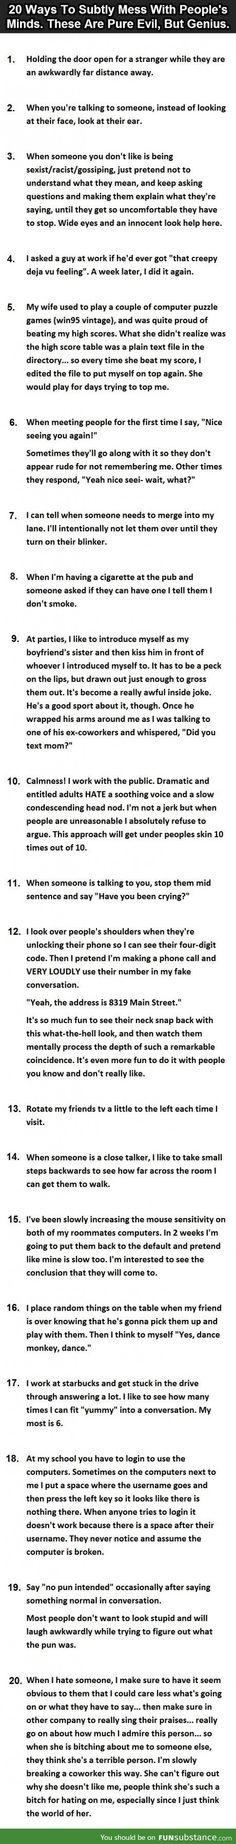 20 ways to mess with people without them knowing